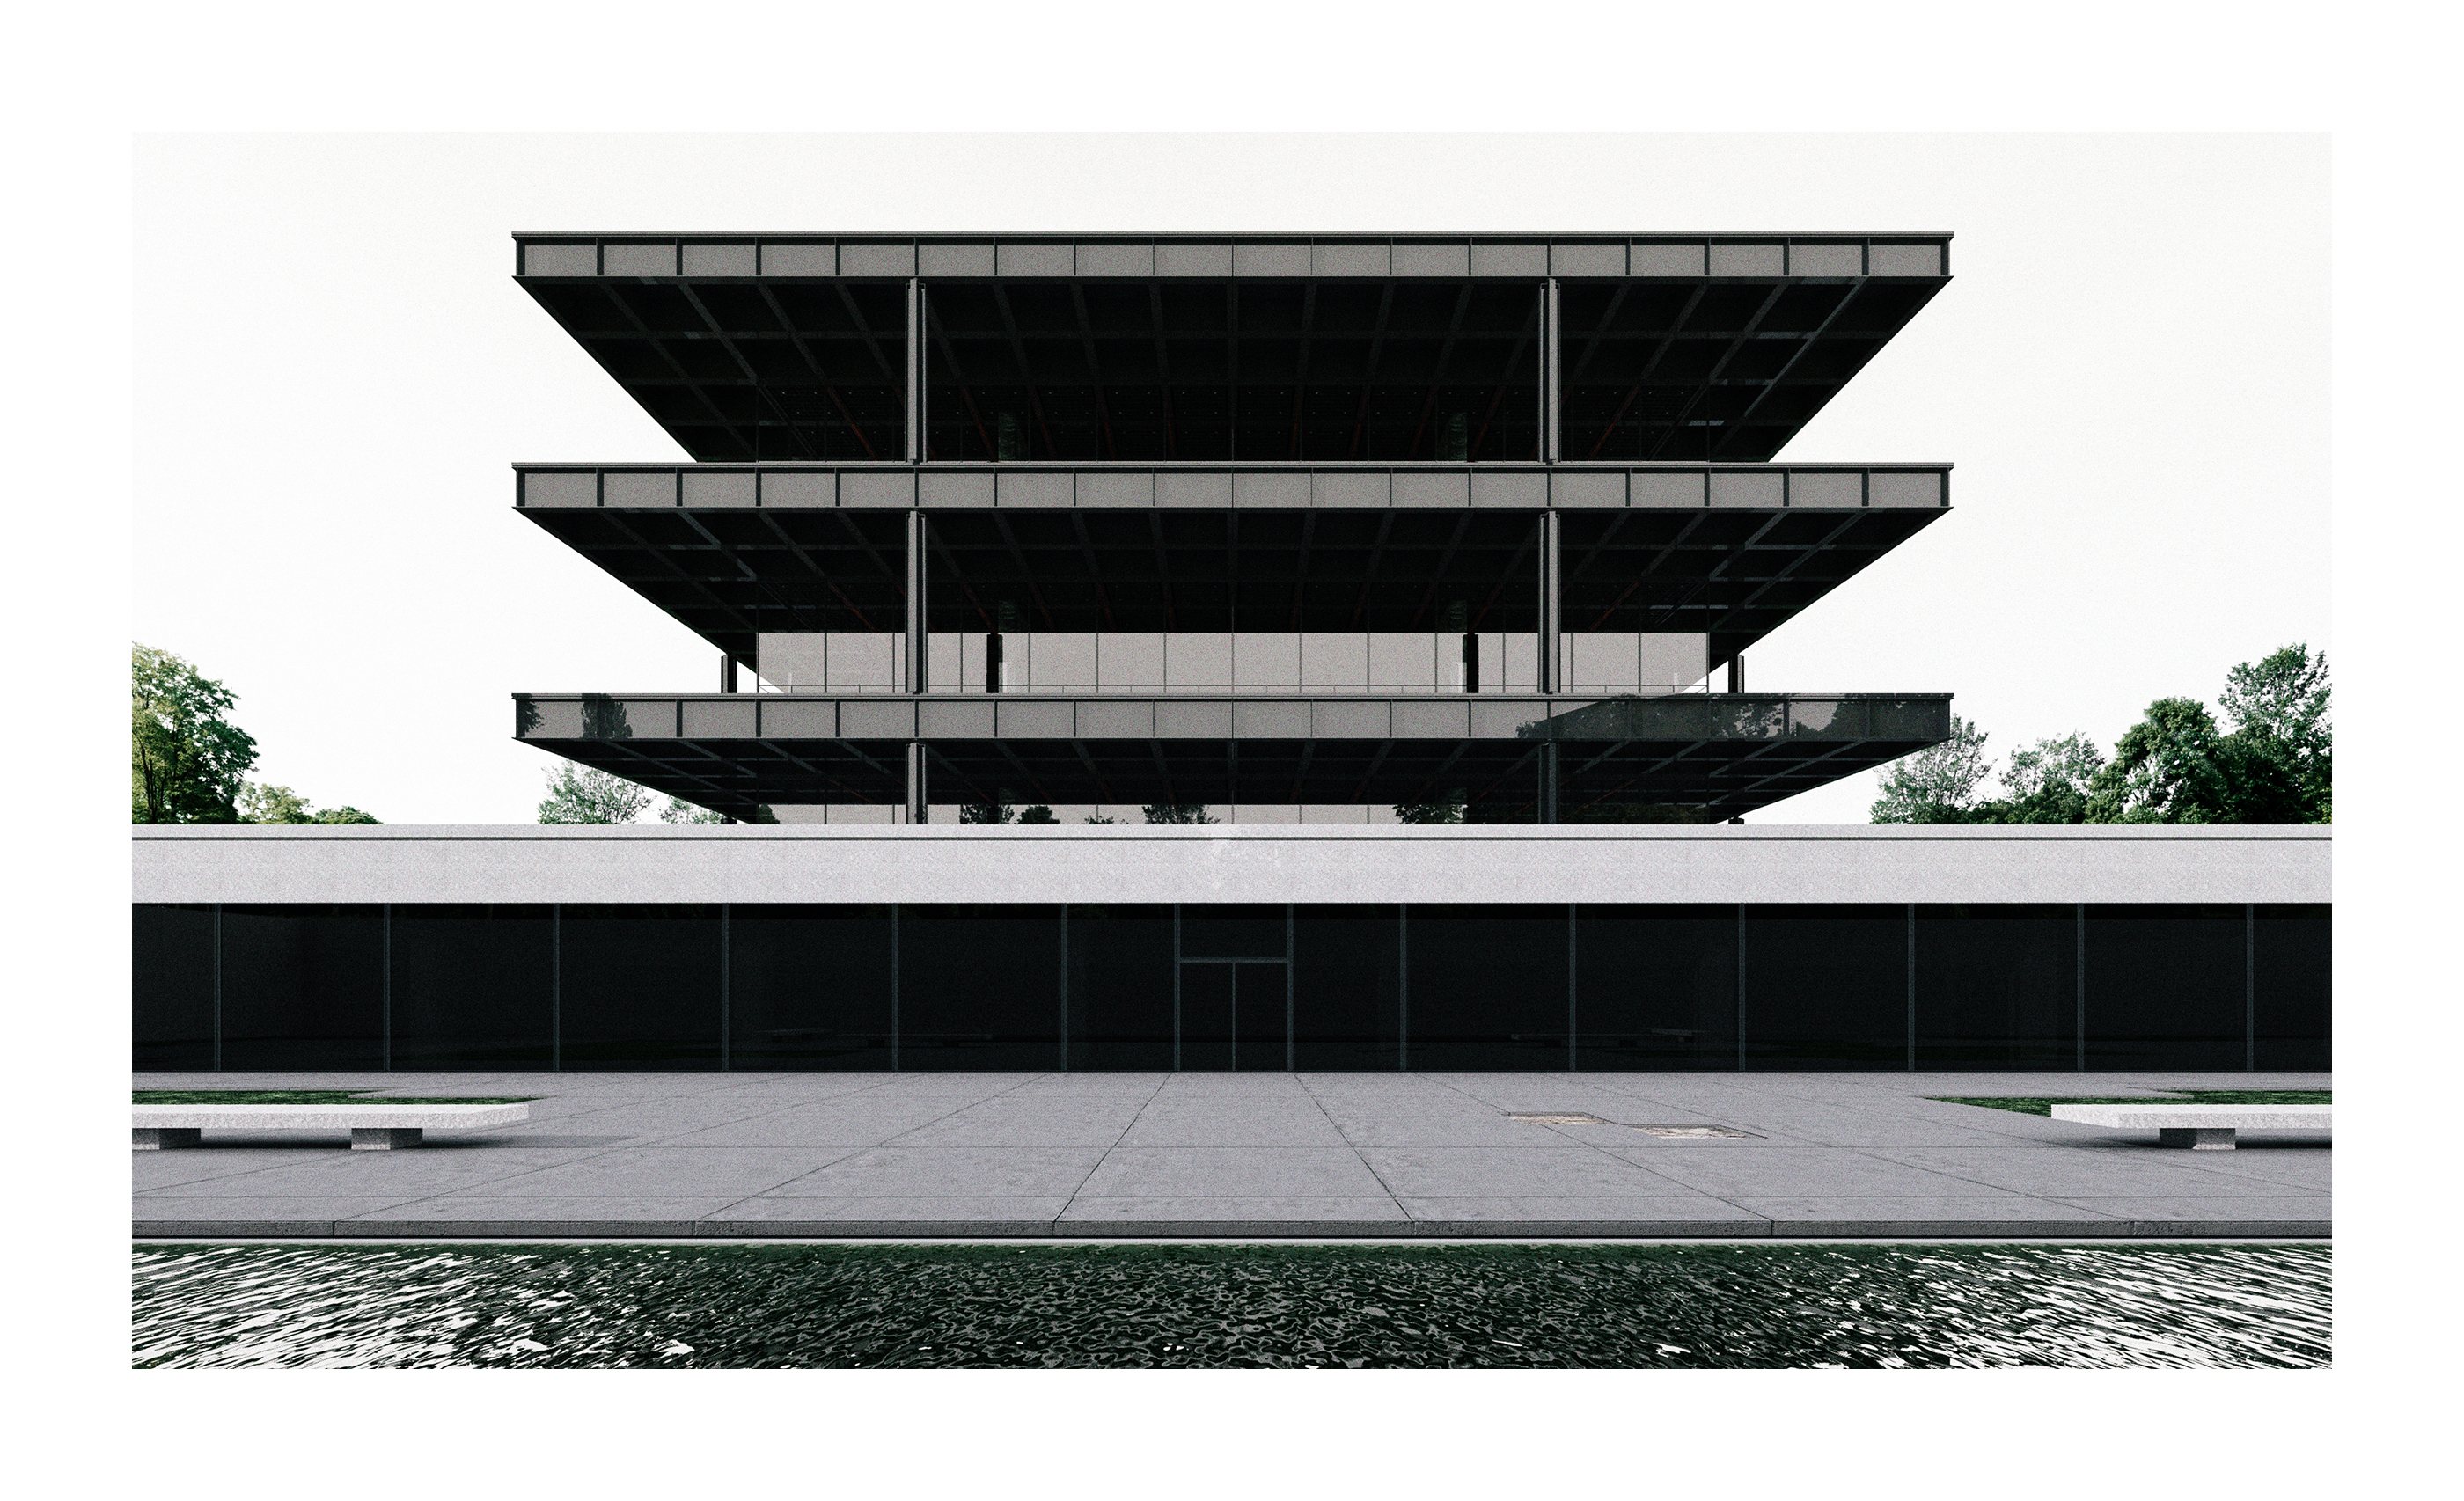 Mies.Interpret